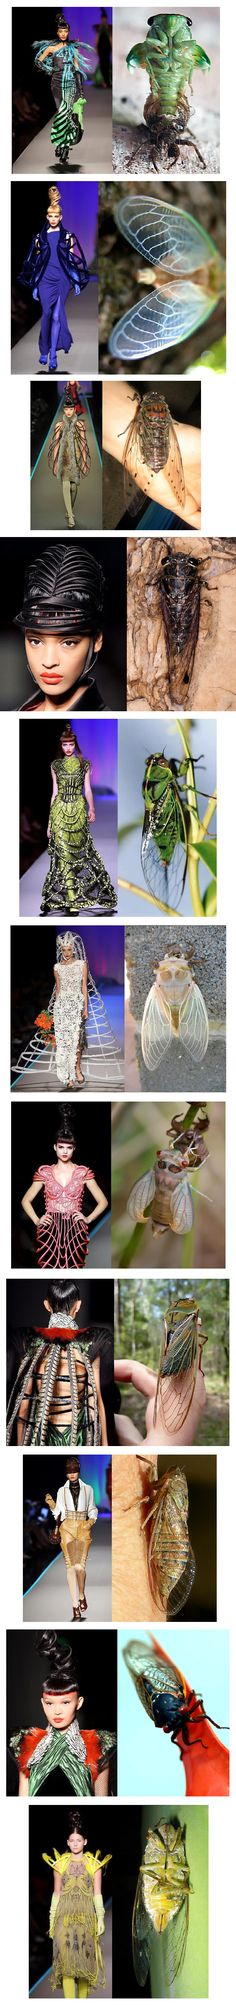 Jean Paul Gaultier | Metamorphosis 2014 | http://senatus.net/article/butterflies-galore-jean-paul-gaultier-spring-2014-couture/